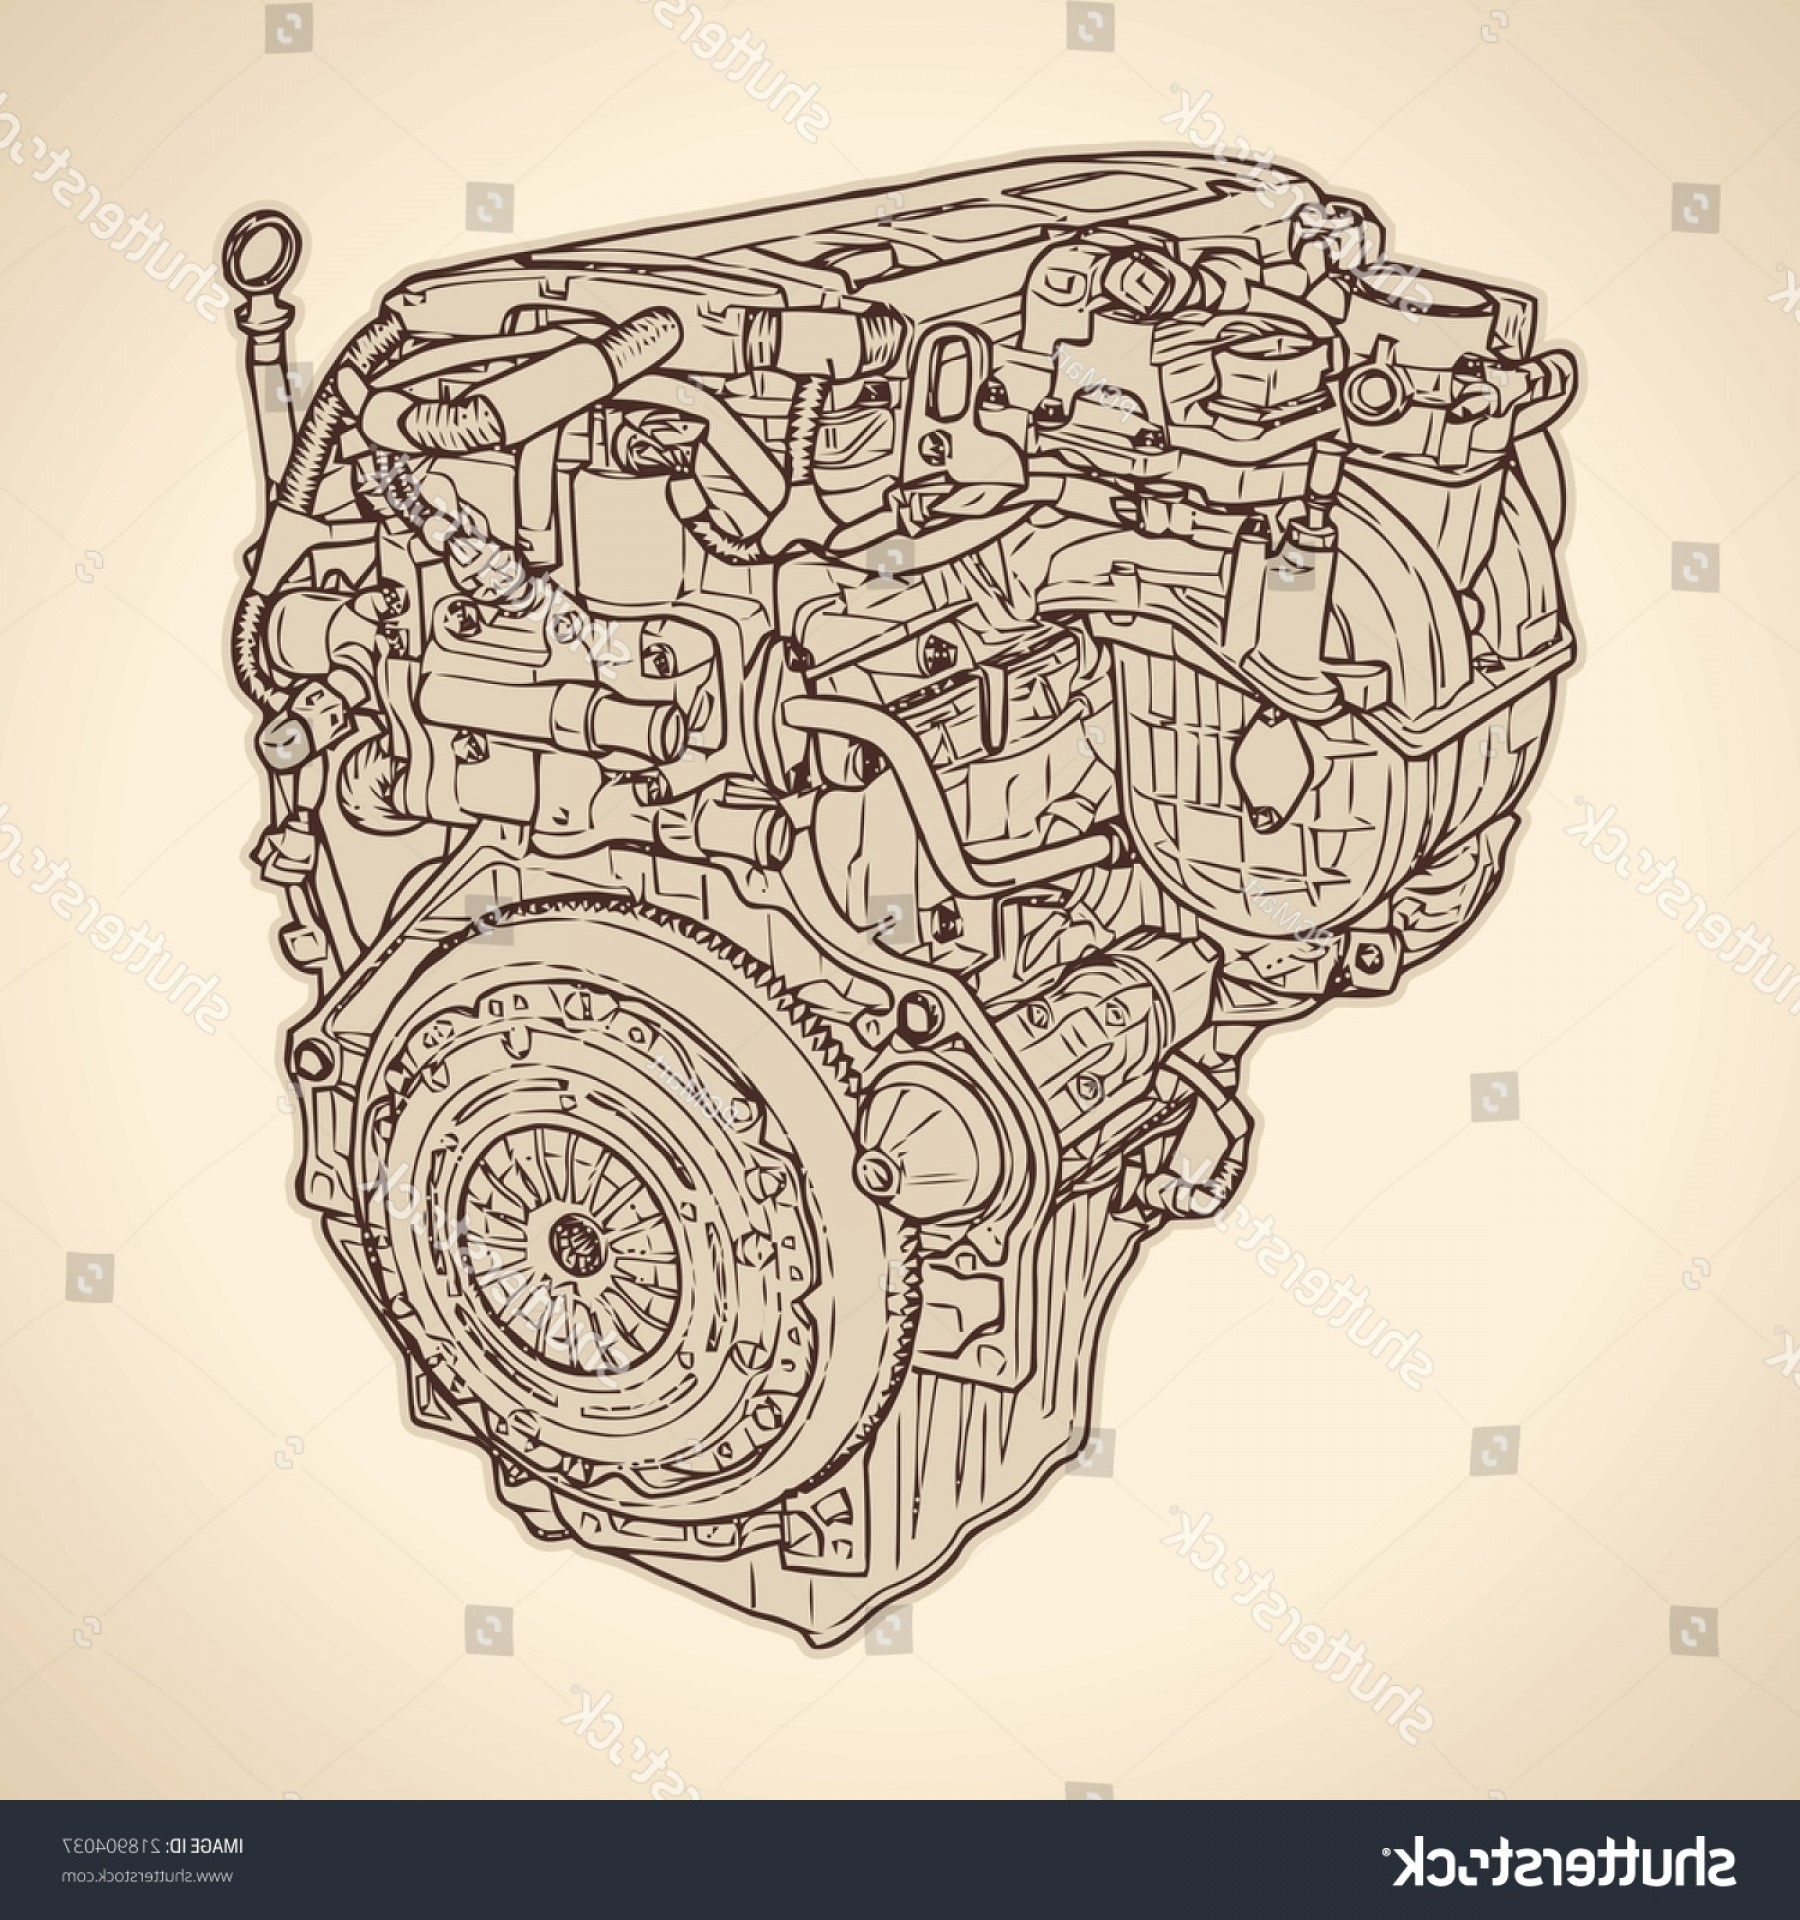 Combustible Engine Vector: Old Internal Combustion Engine Drawing Vector